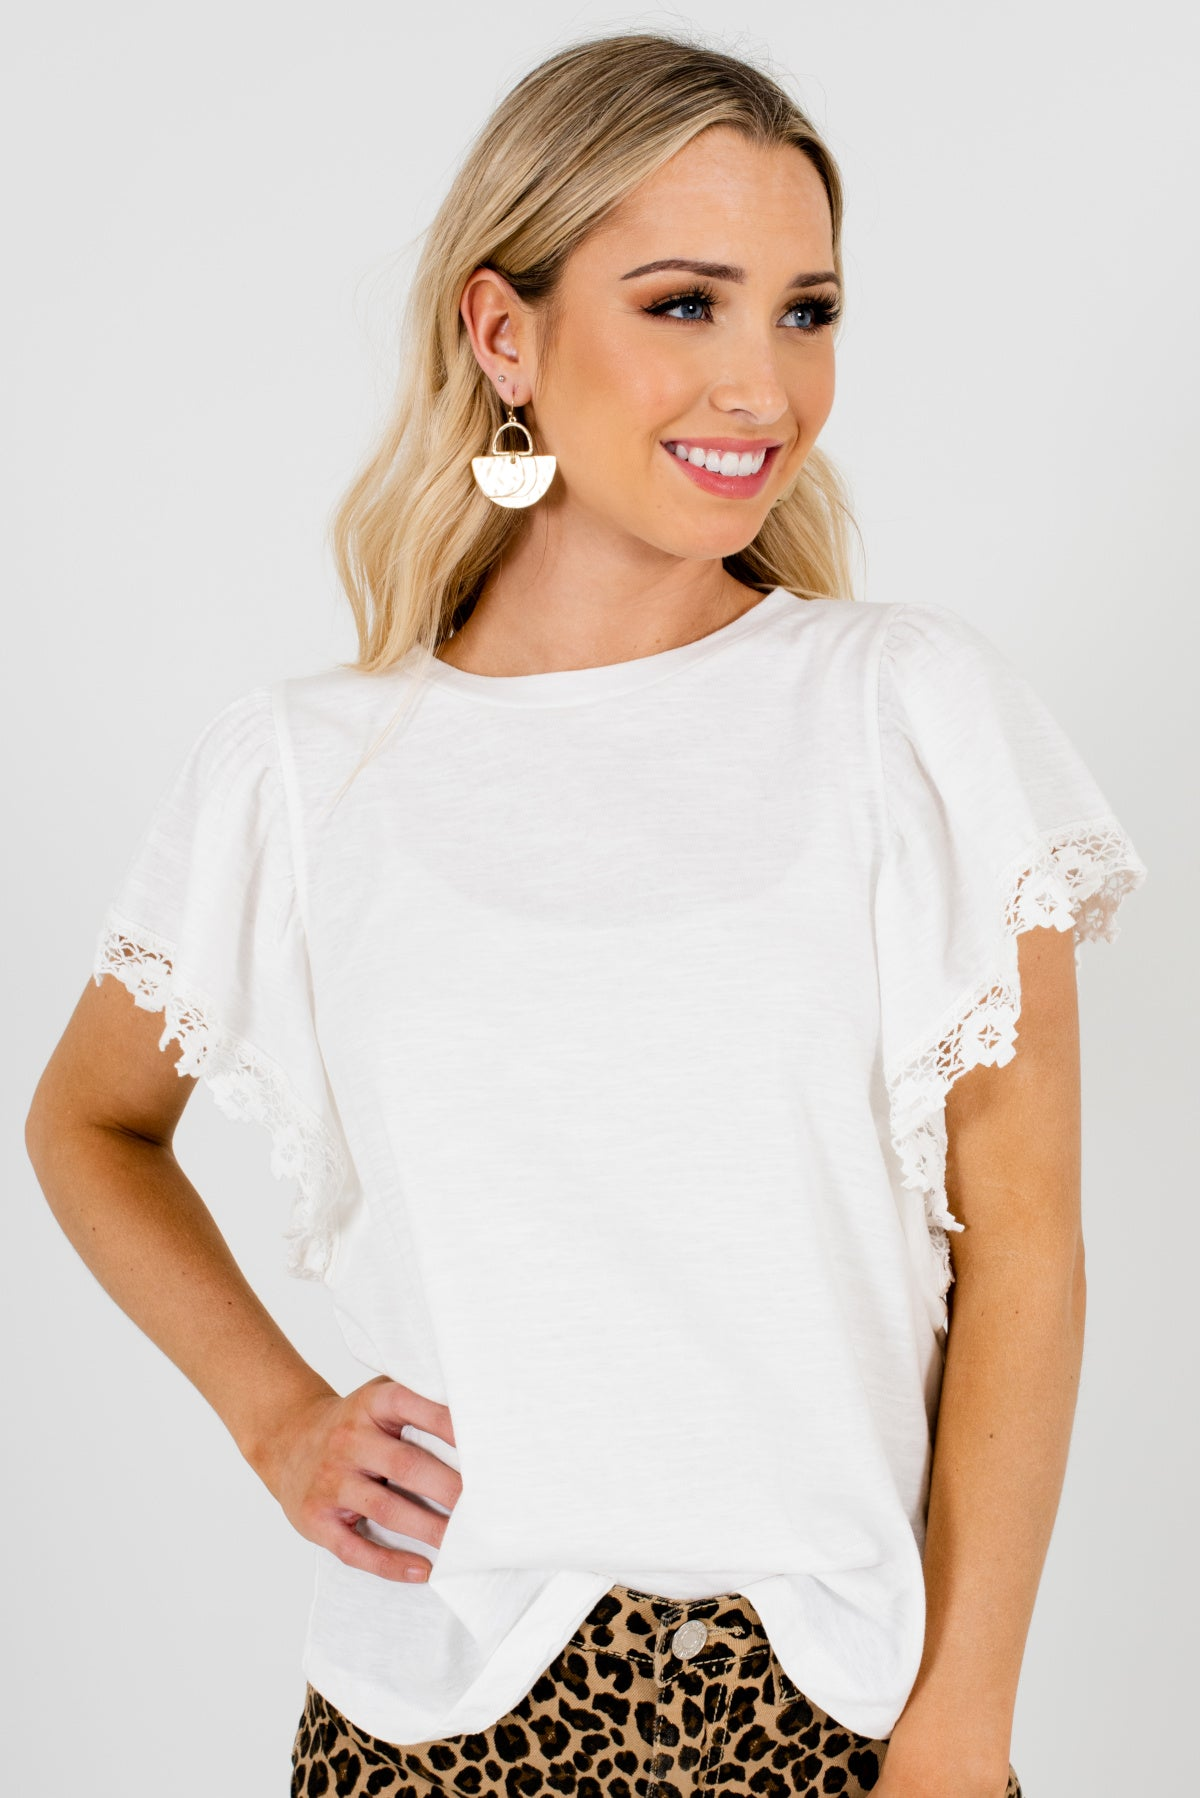 White Butterfly Sleeve Style Boutique Tops for Women